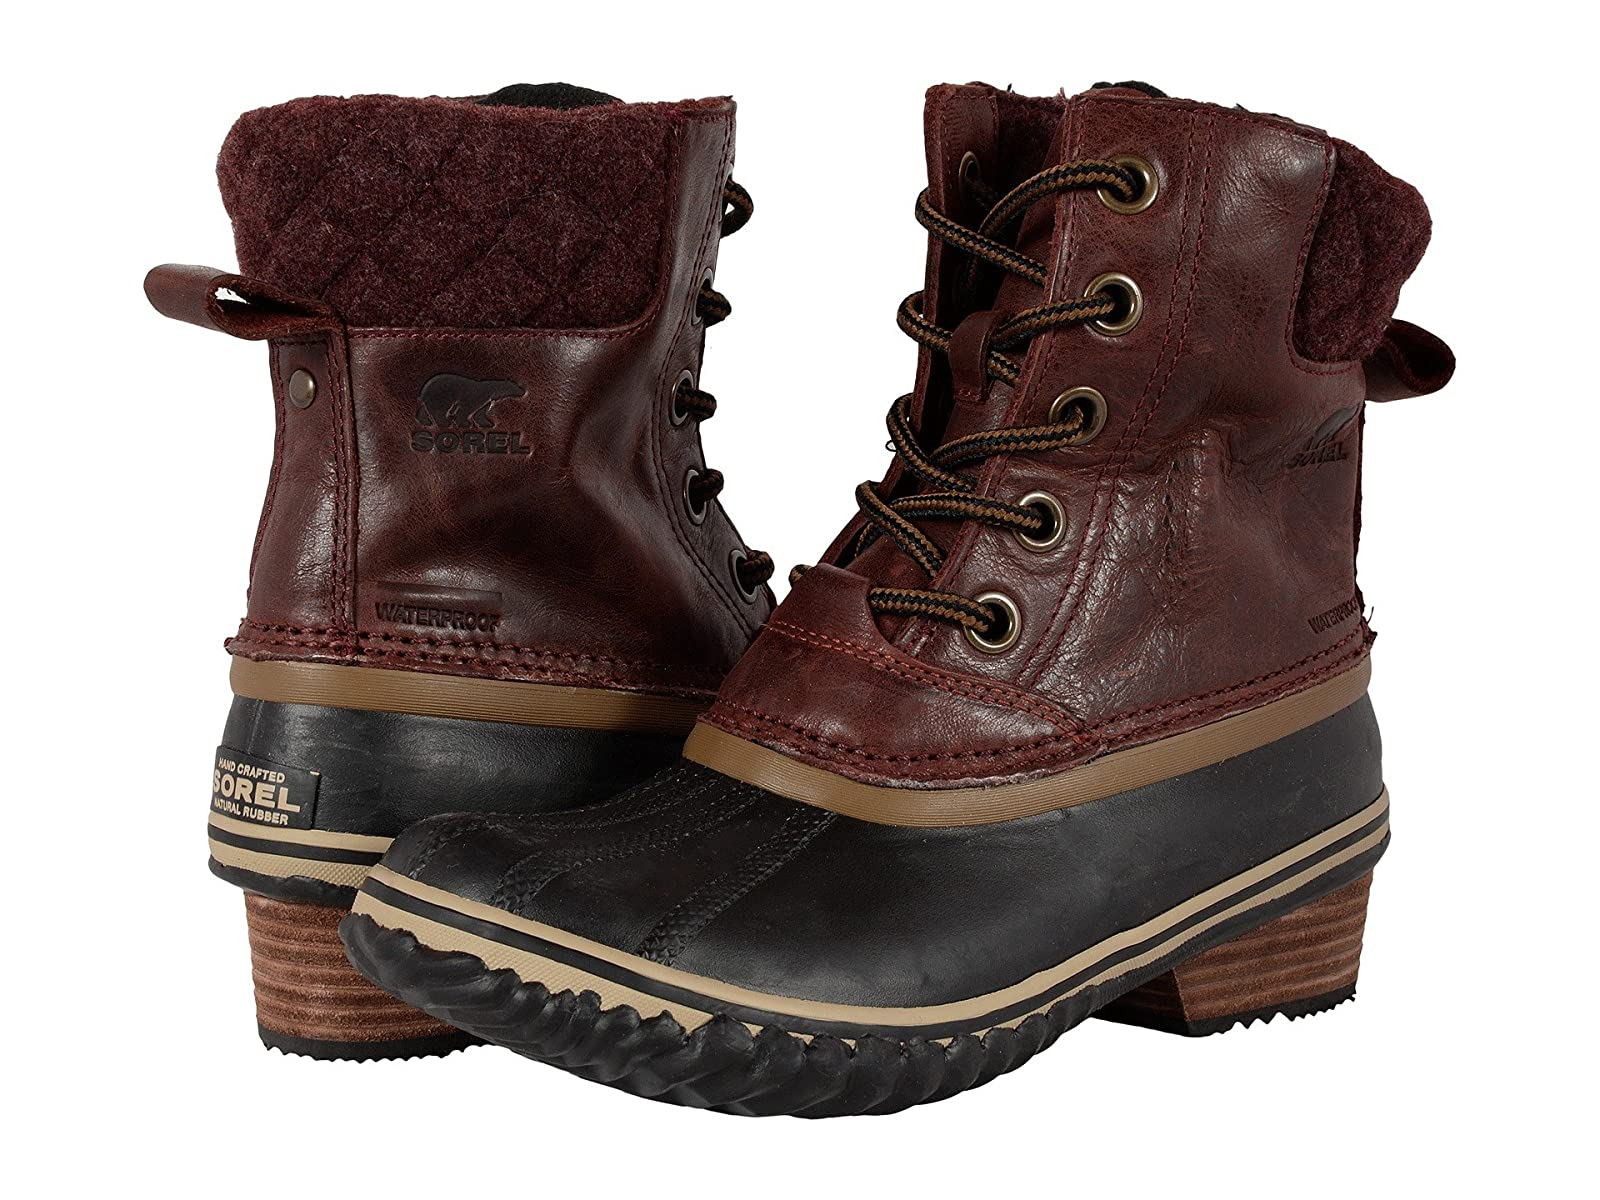 SOREL Slimpack II LaceCheap and distinctive eye-catching shoes